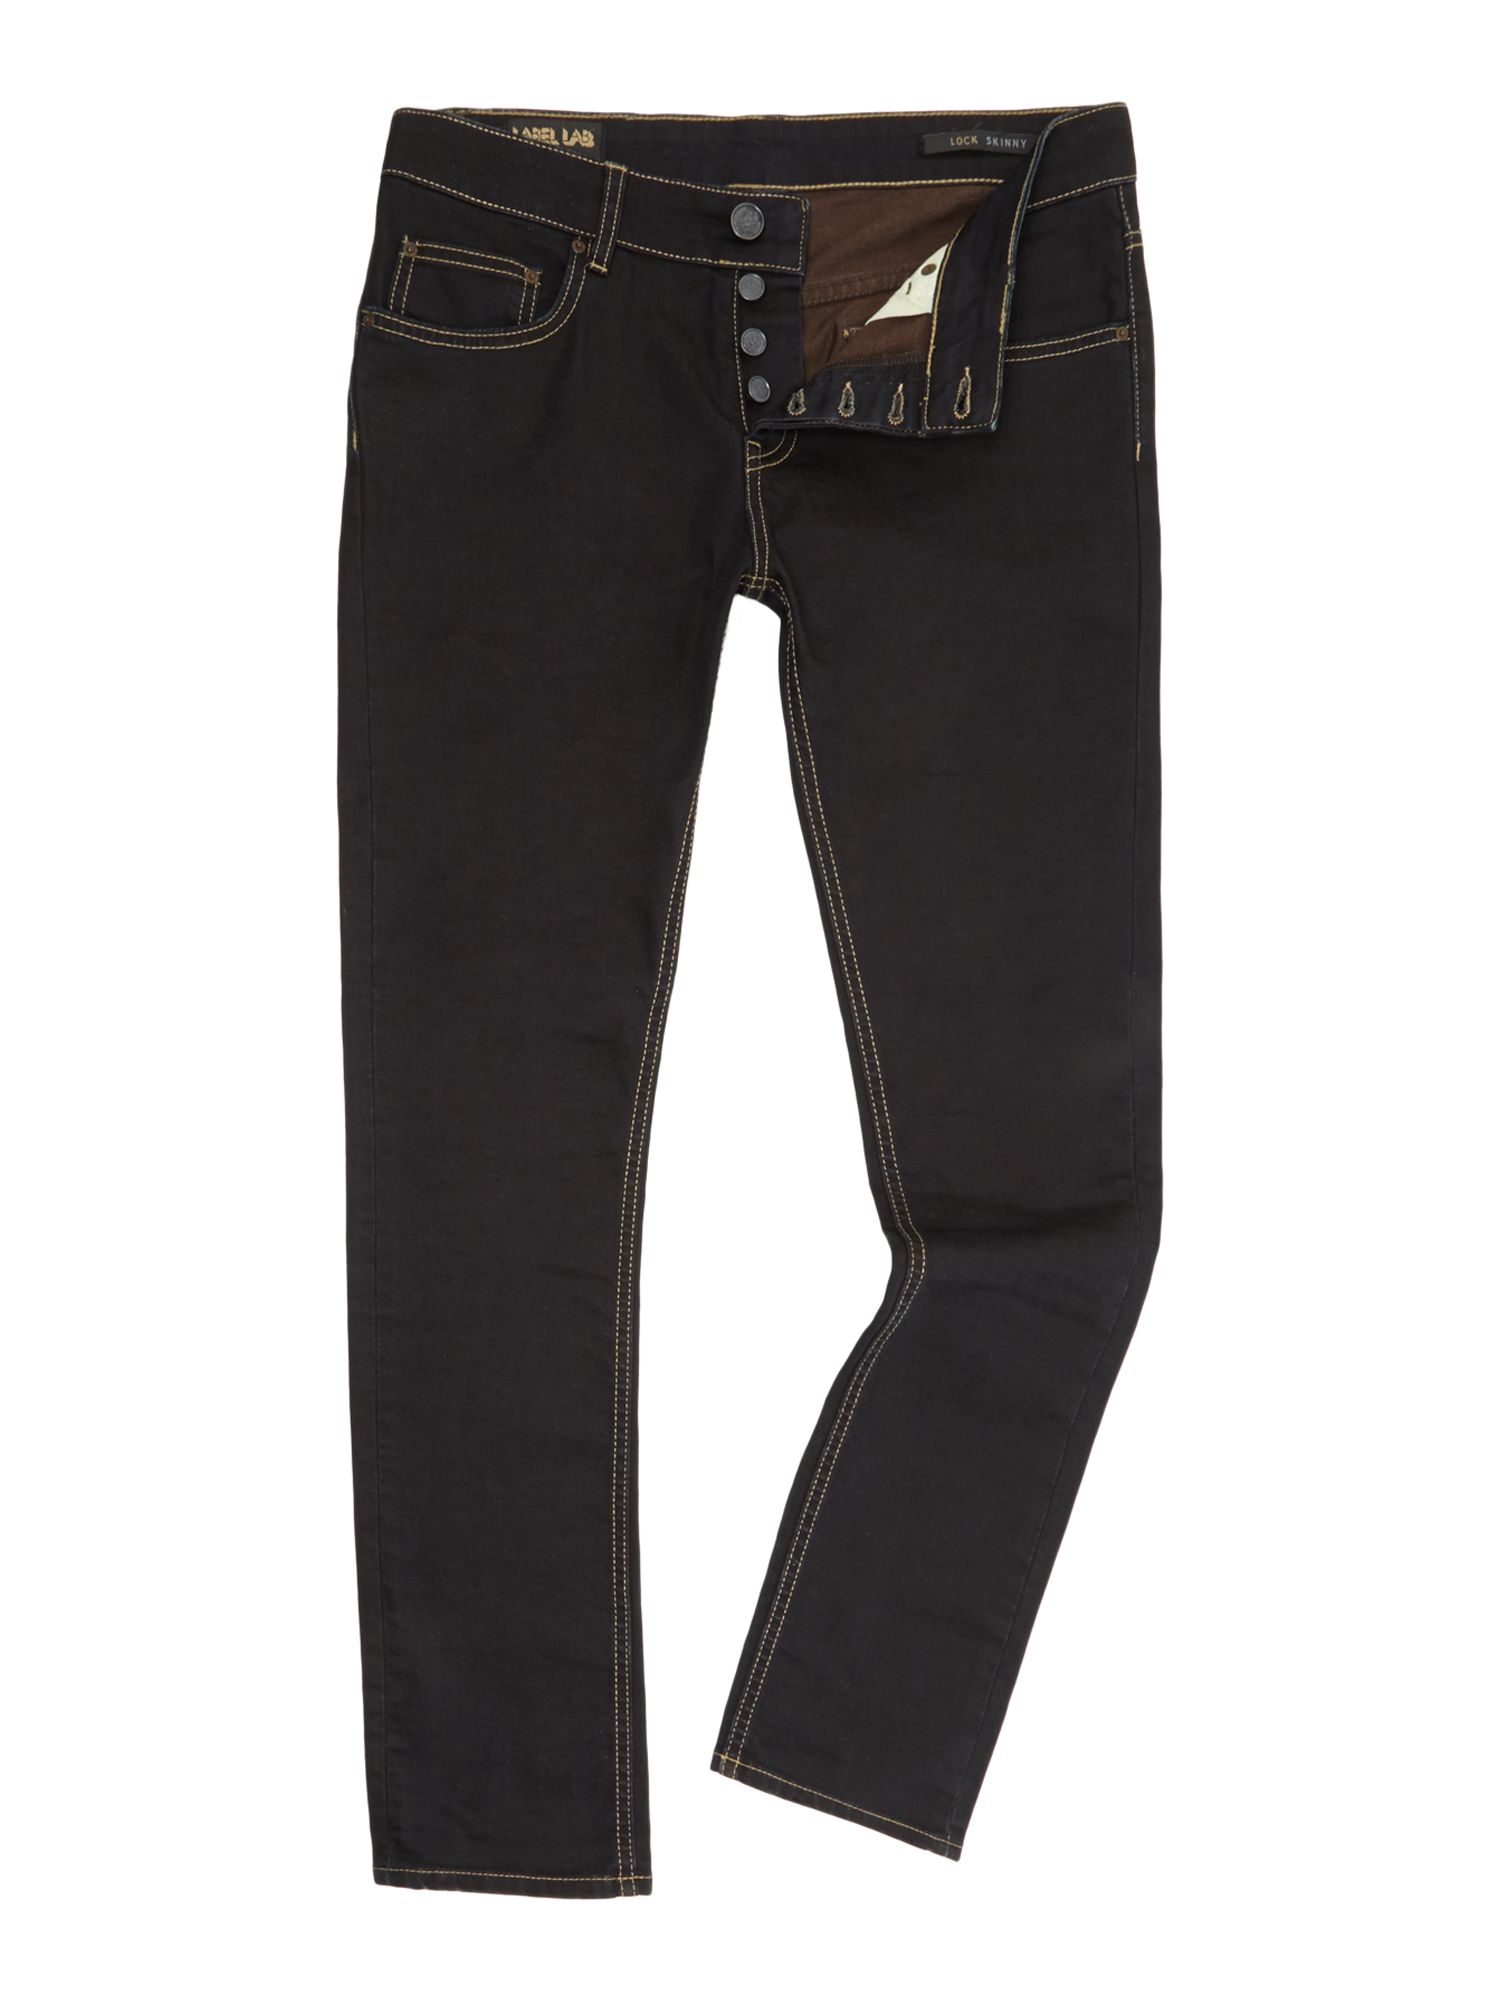 Poker straight taper leg jean